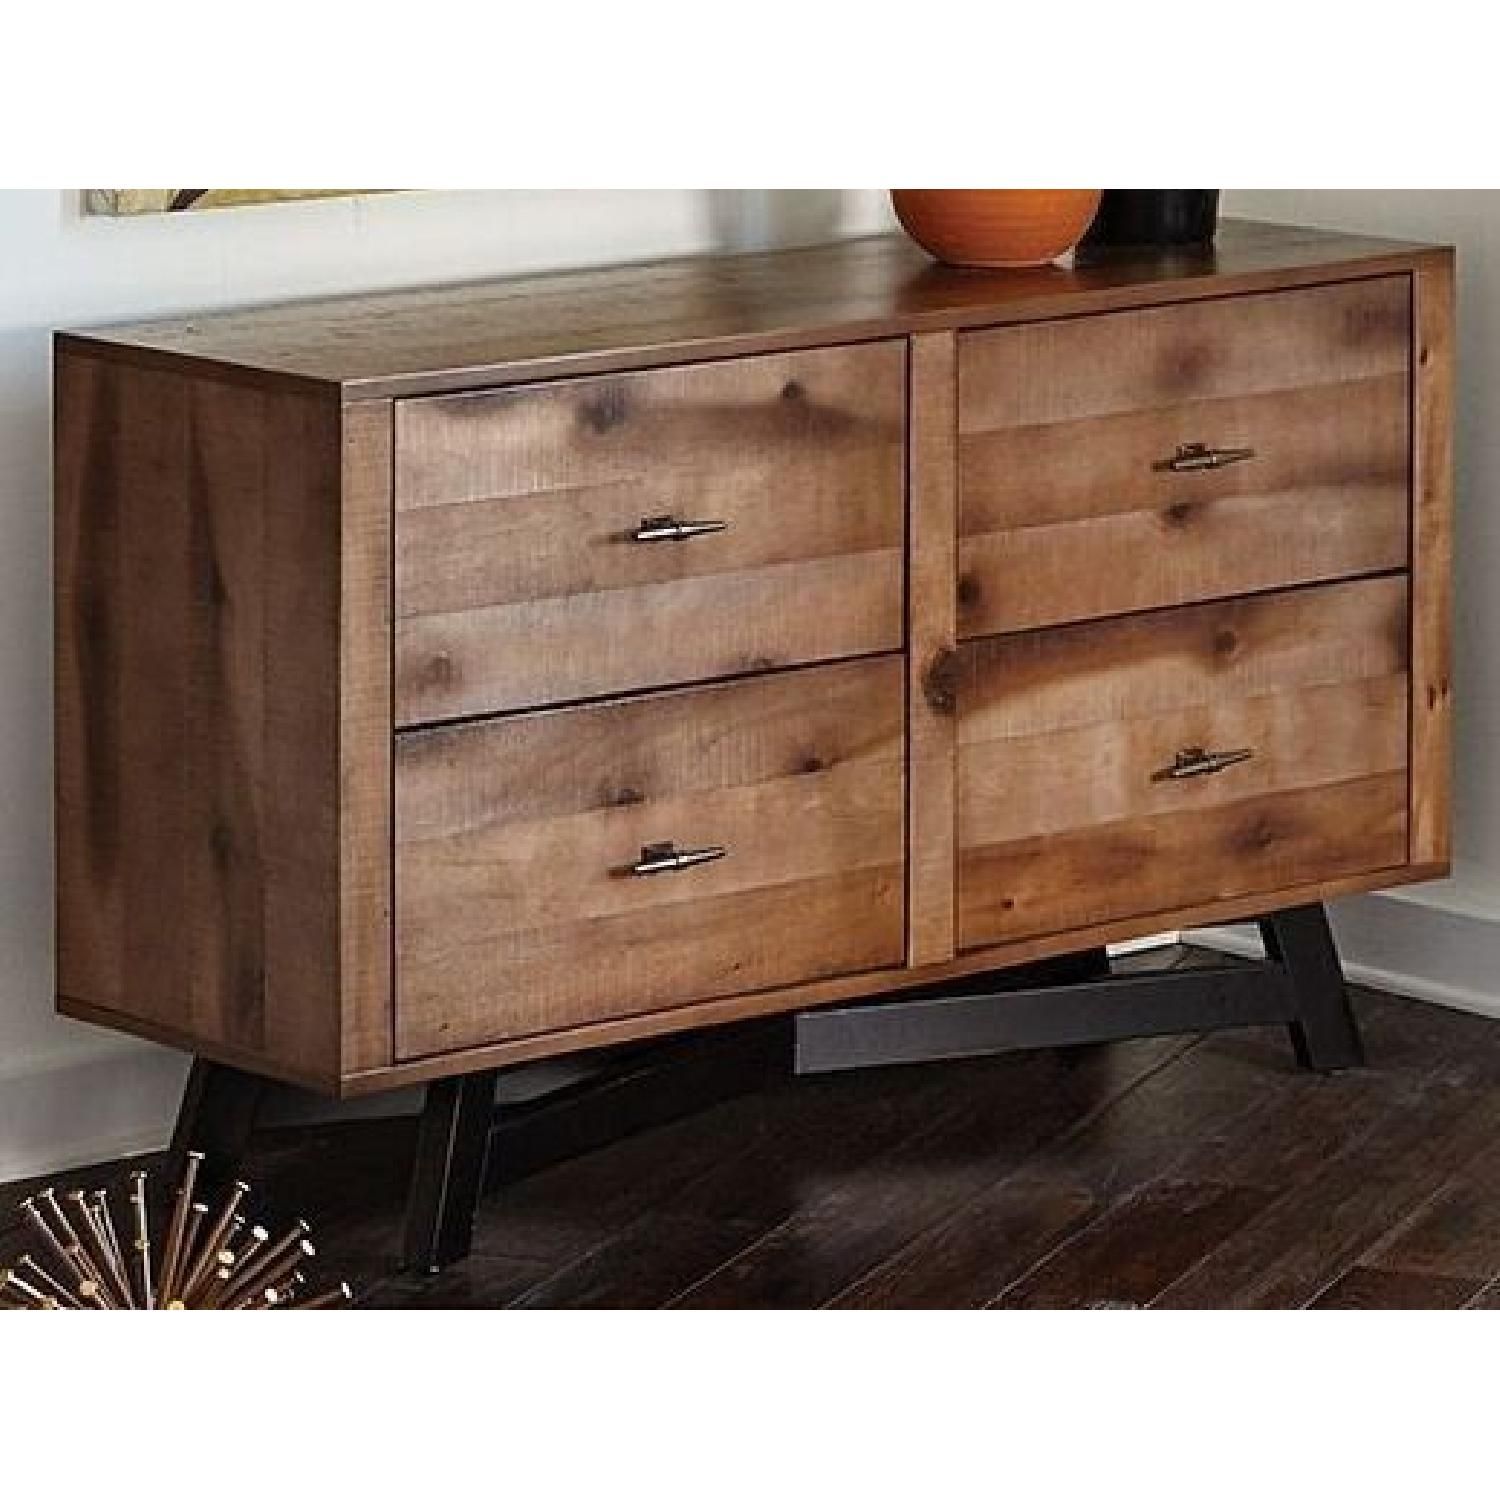 Accent Table w/ Storage Drawers